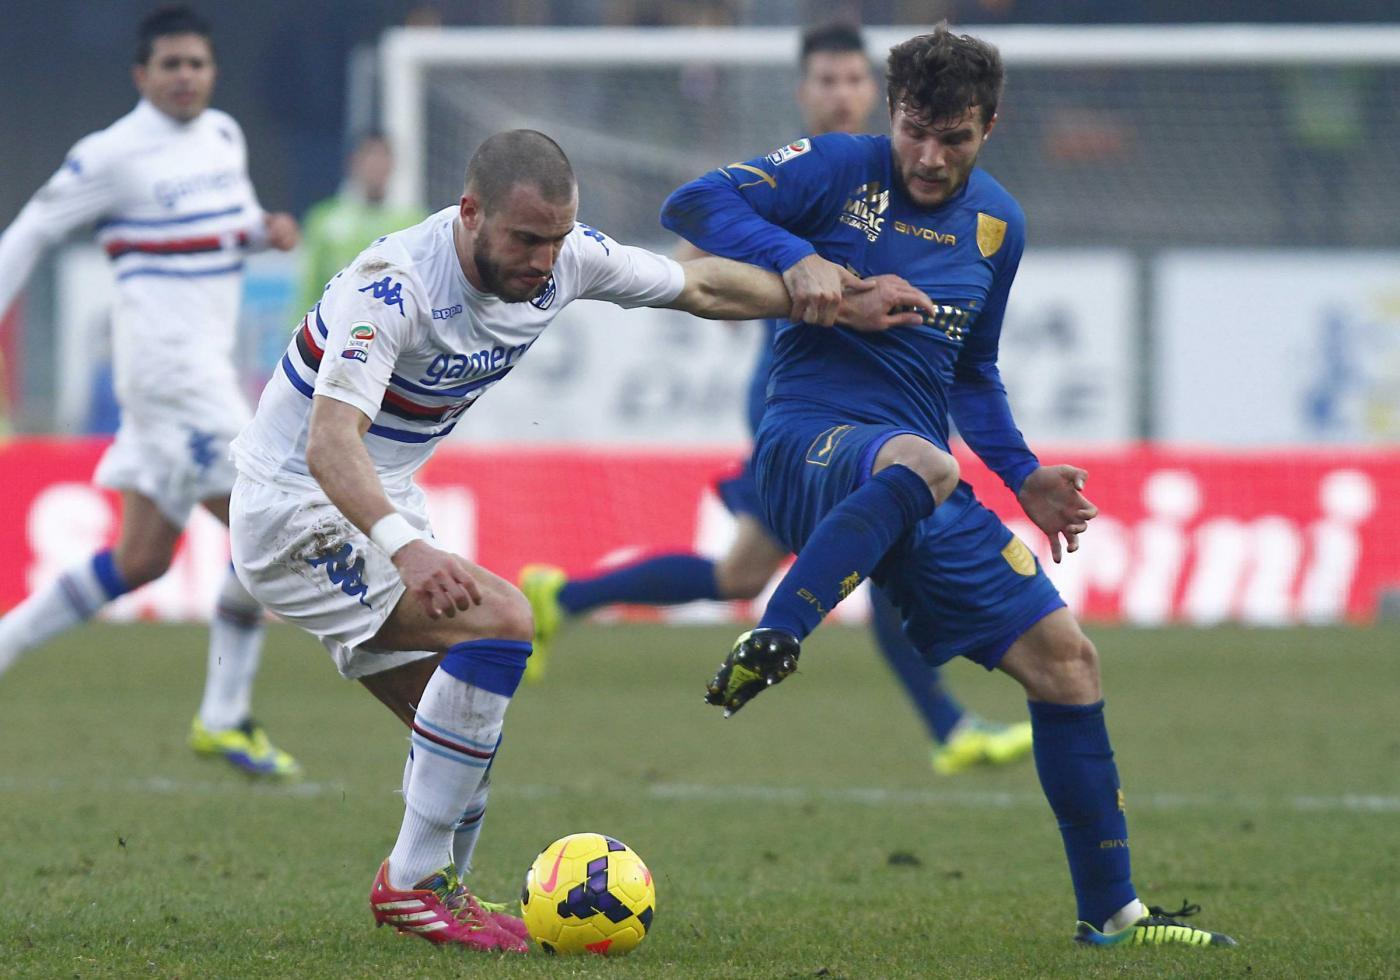 chievo-sampdoria - photo #1